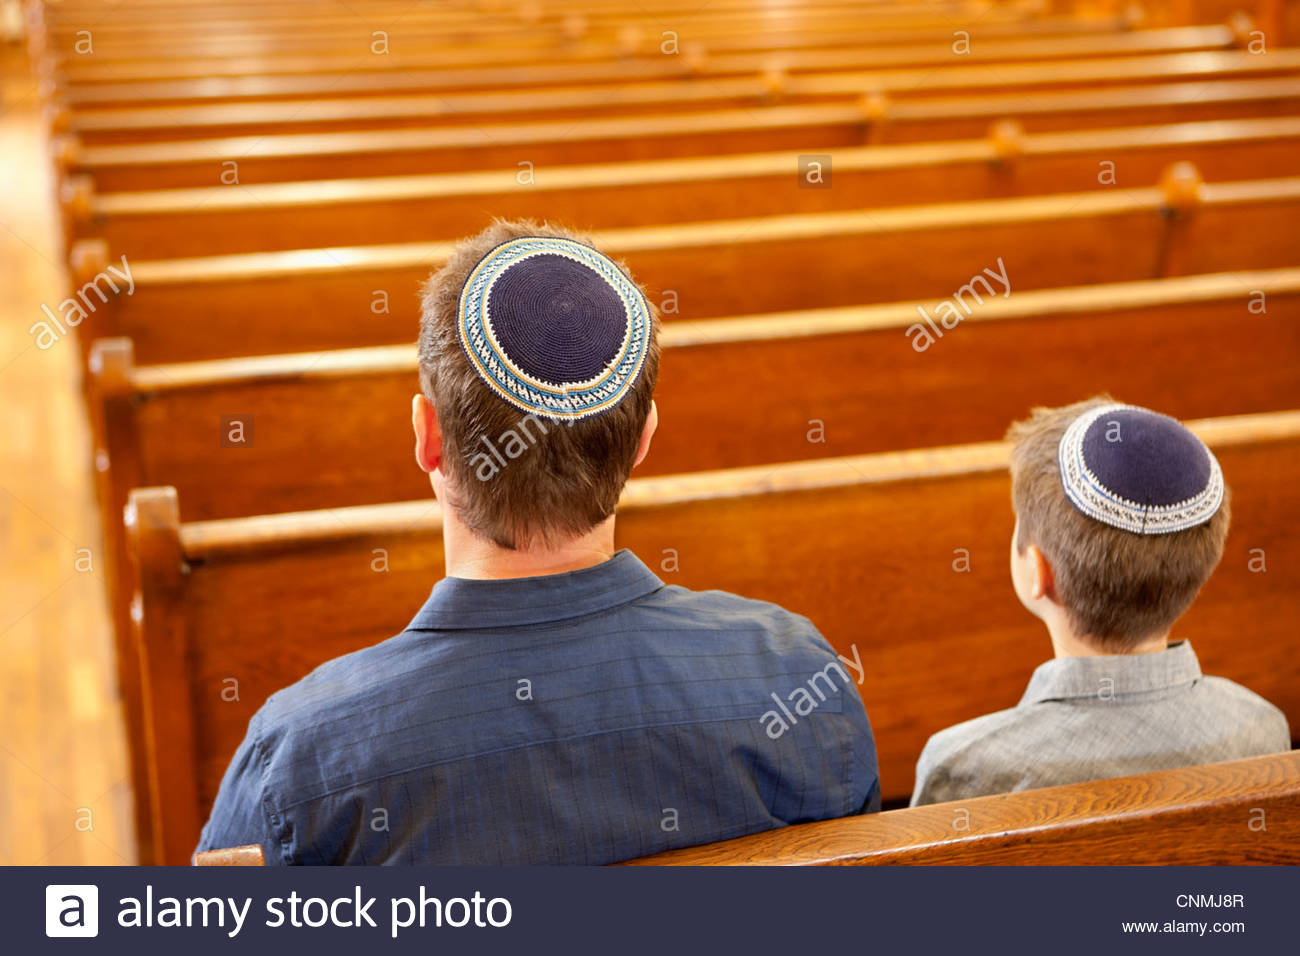 Father and Son in yarmulkes sitting in synagogue Photo Stock